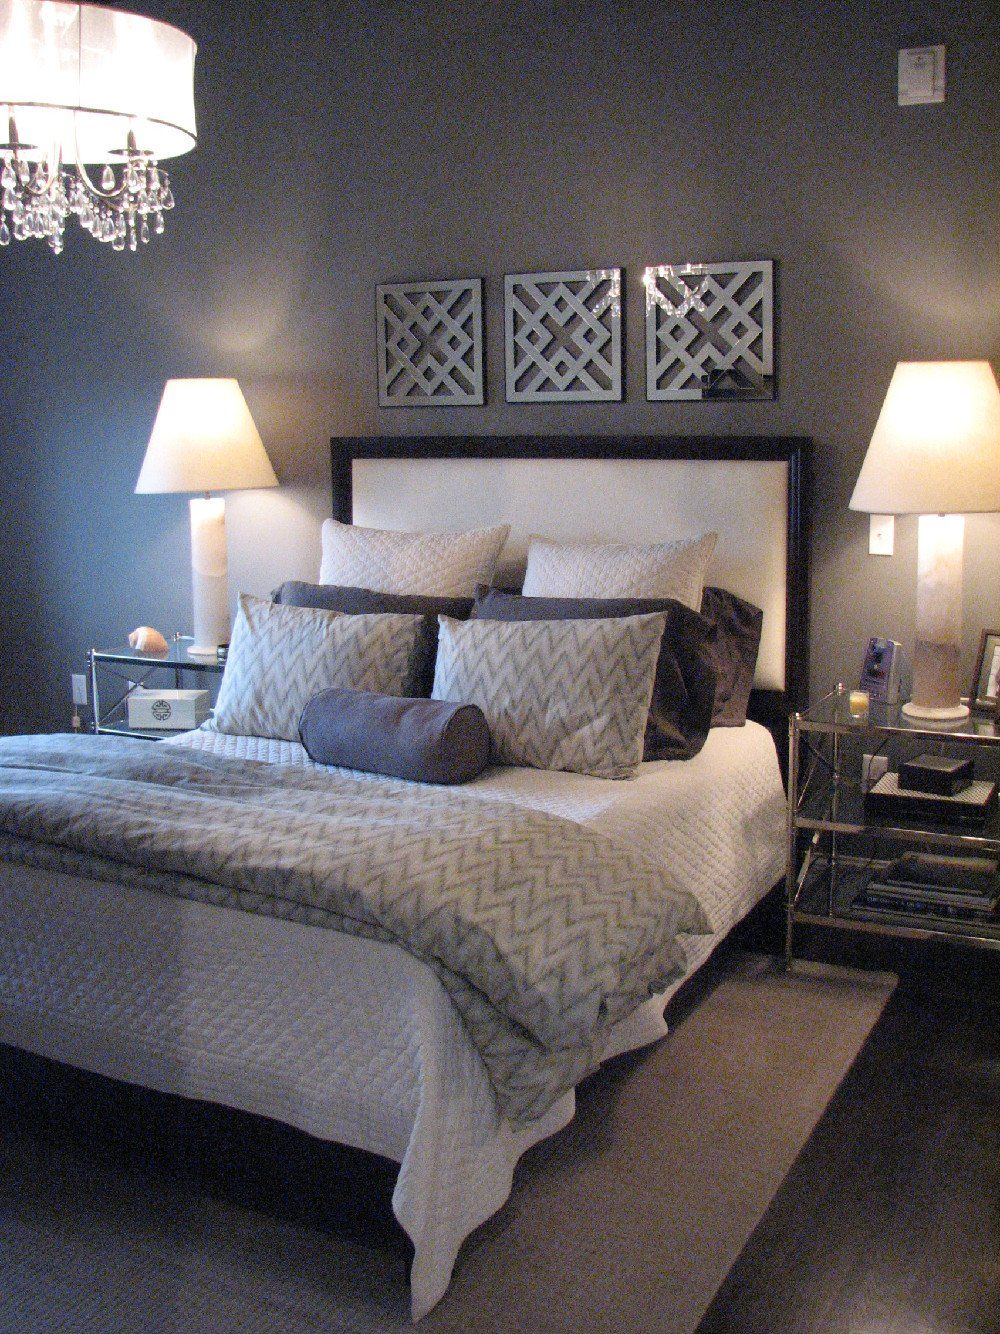 Best Master Bedroom Design Idea In Franklin Tn With Images 400 x 300